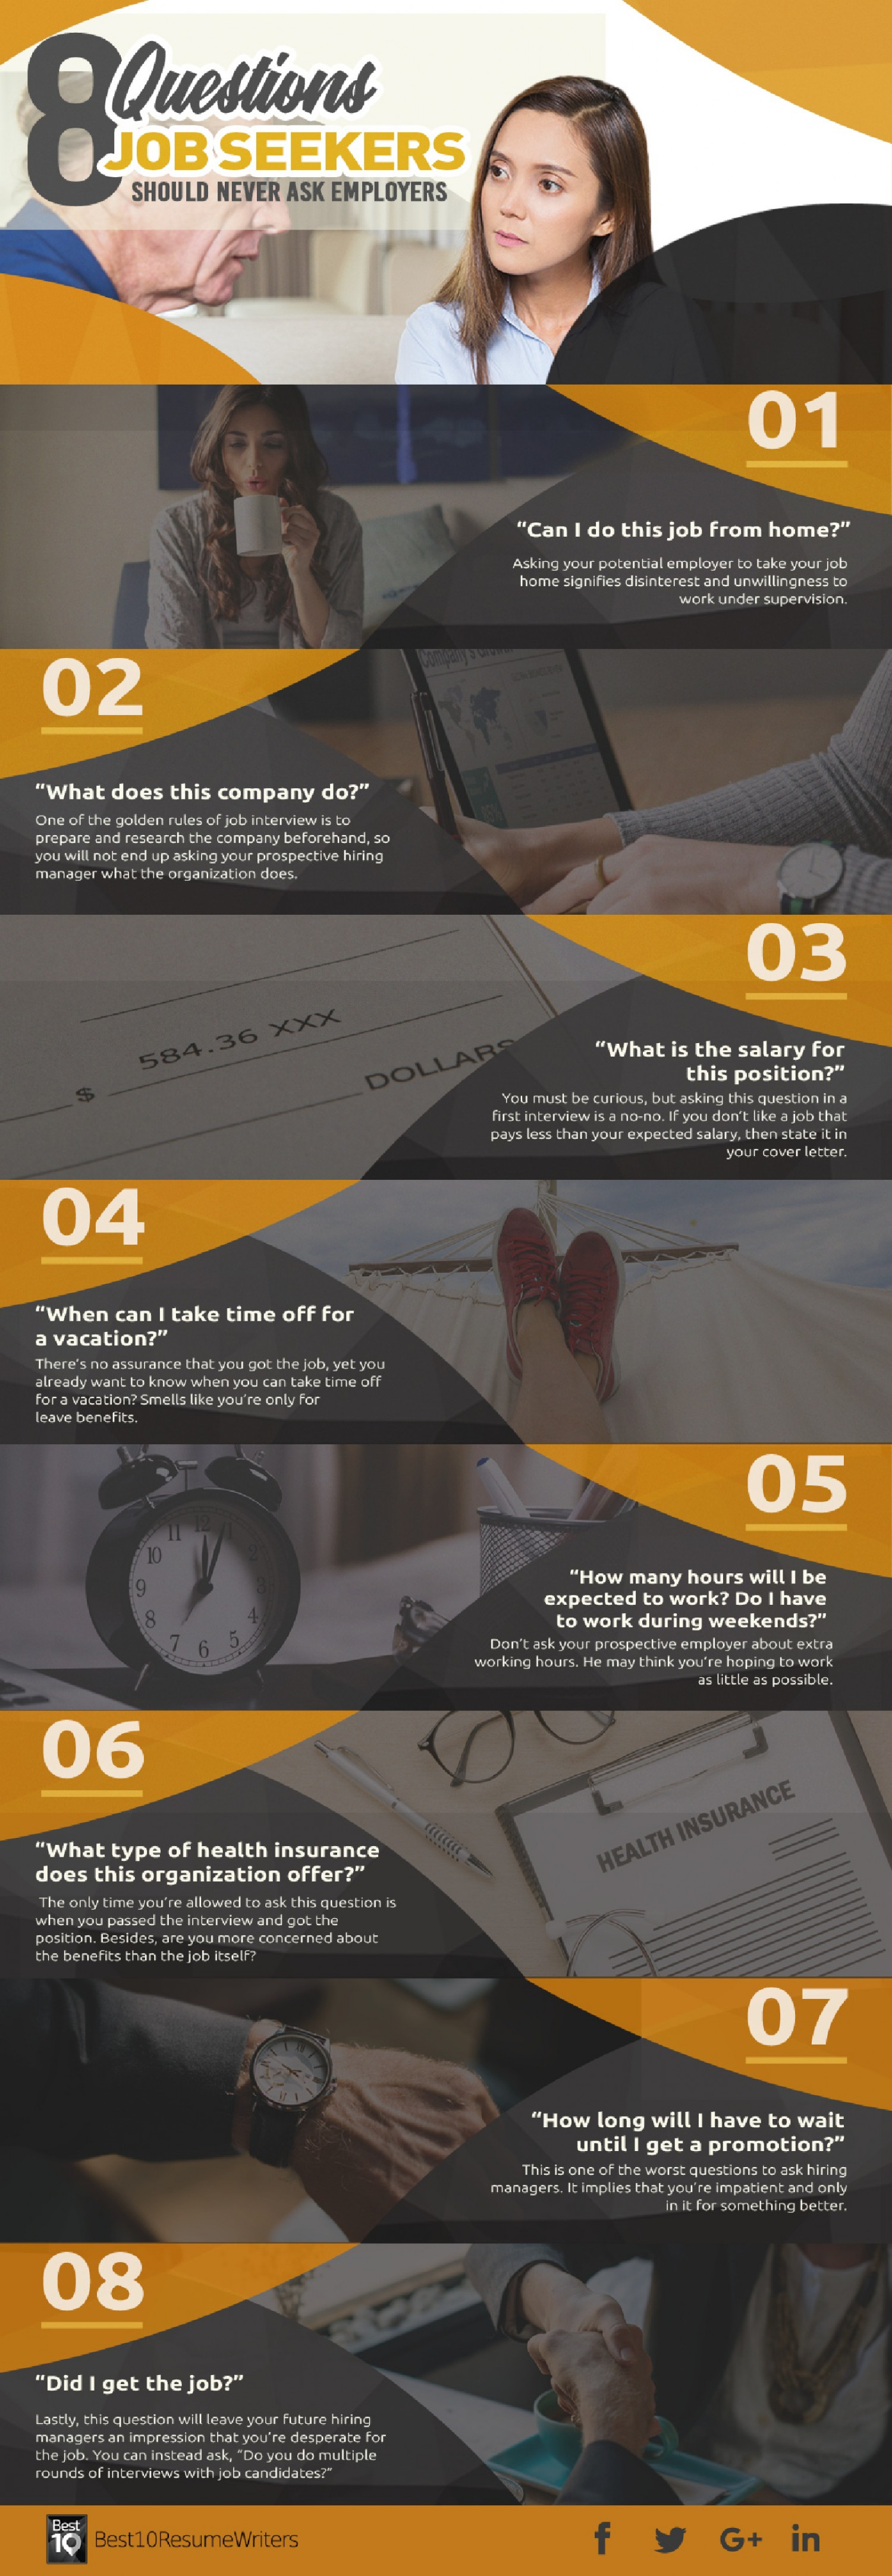 8 Questions Job Seekers Should Never Ask Employers Infographic